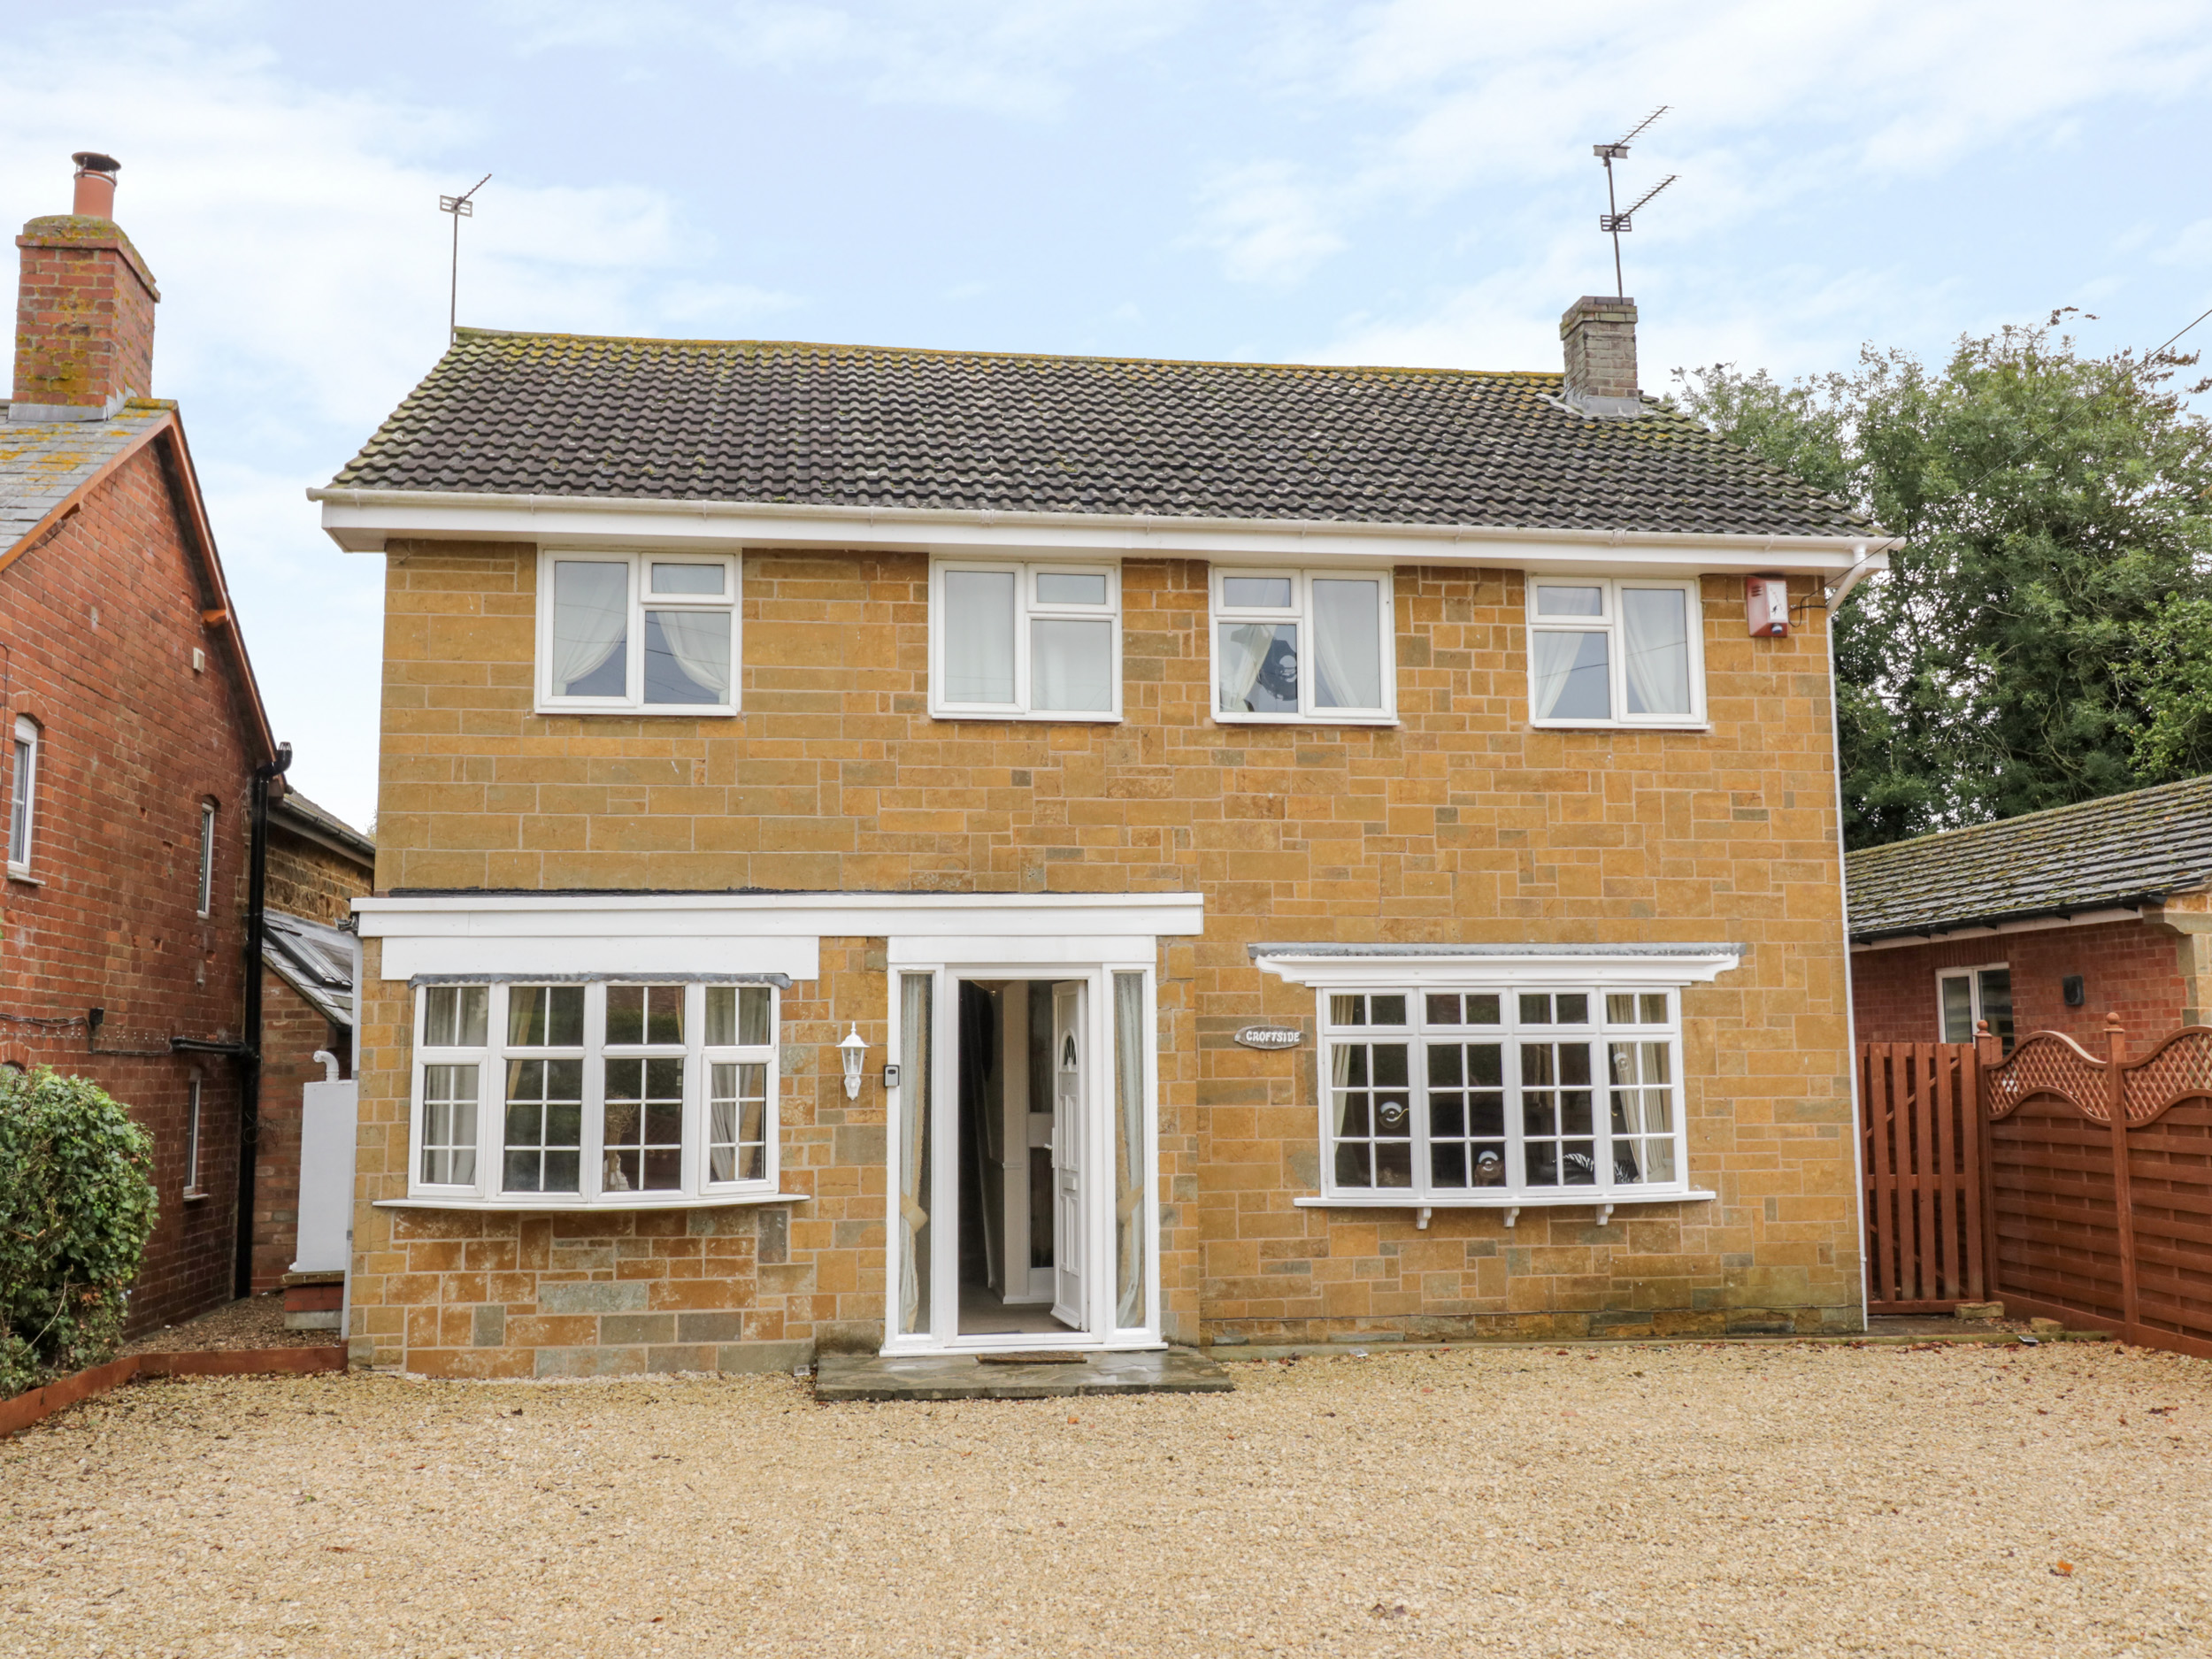 5 bedroom Cottage for rent in Southam